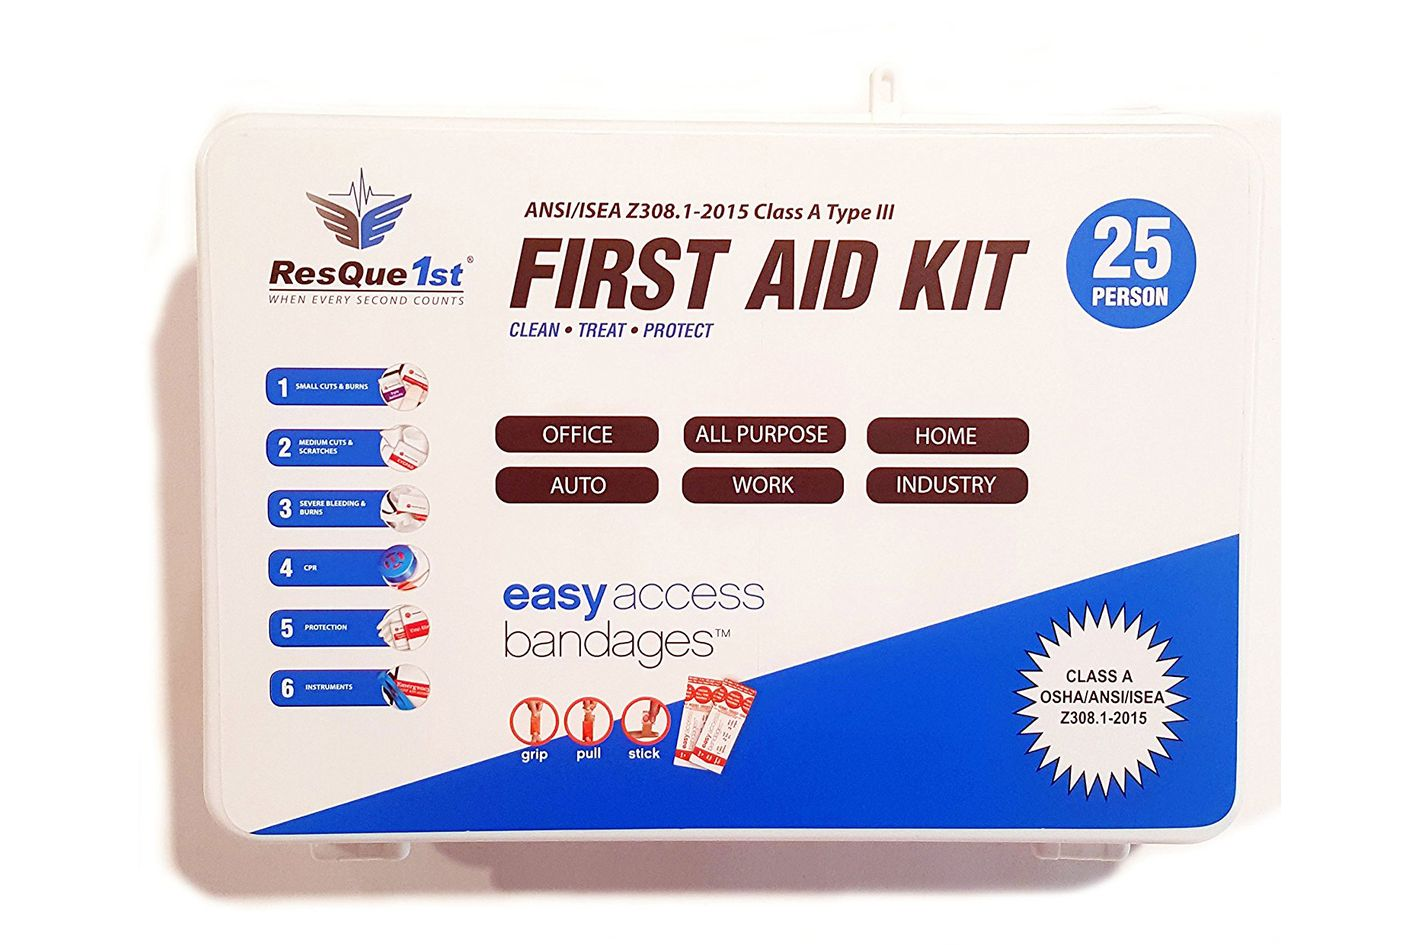 ResQue1st First Aid Kit